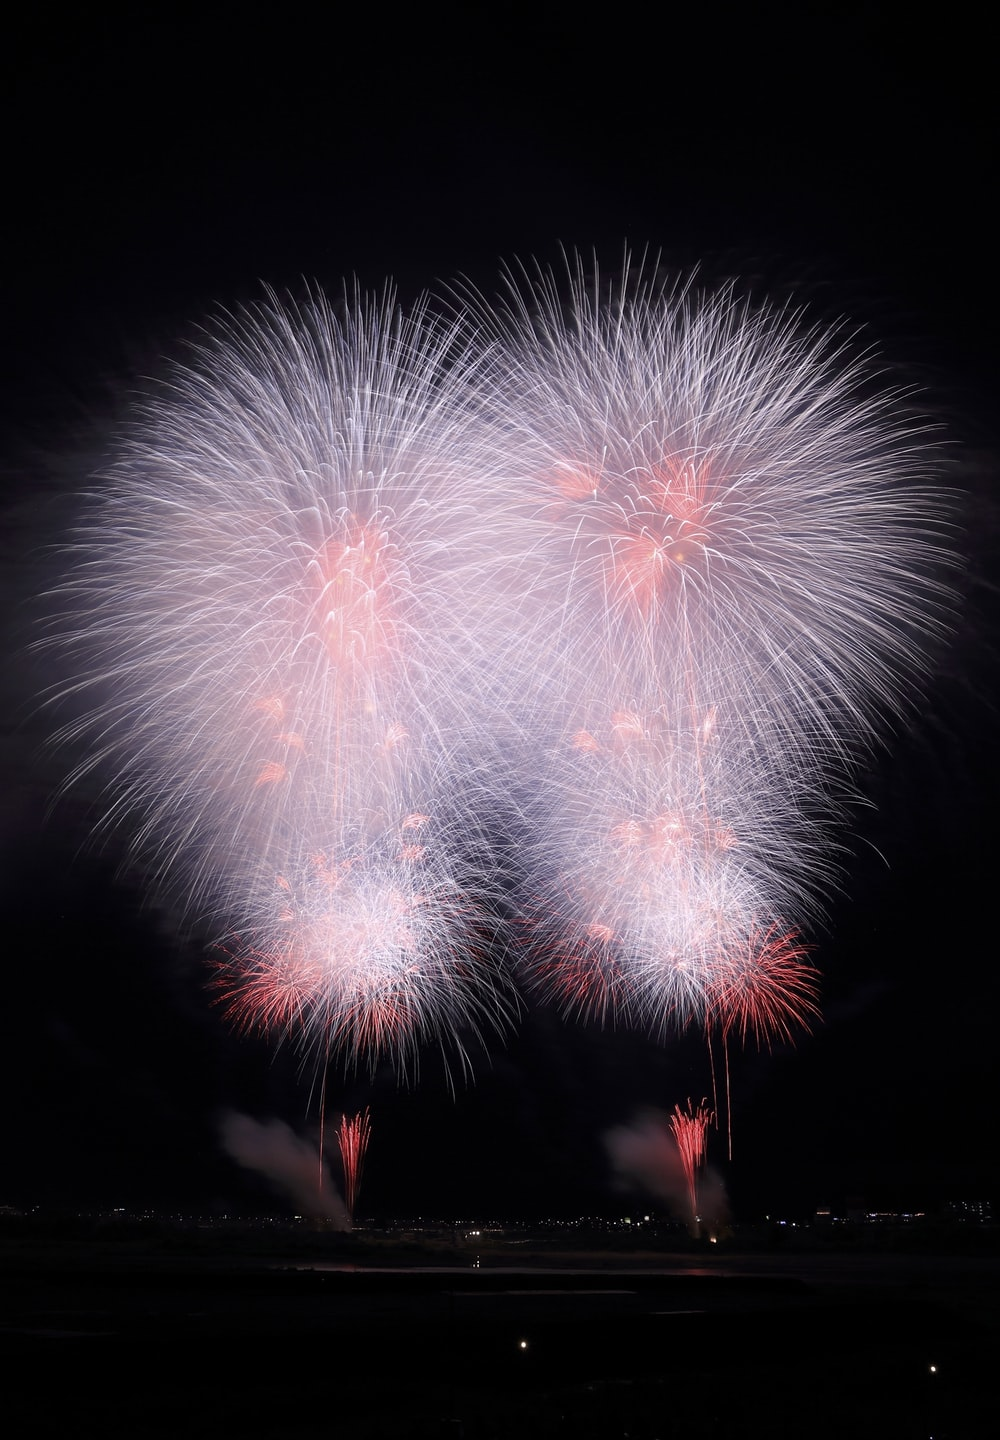 white and red fireworks display